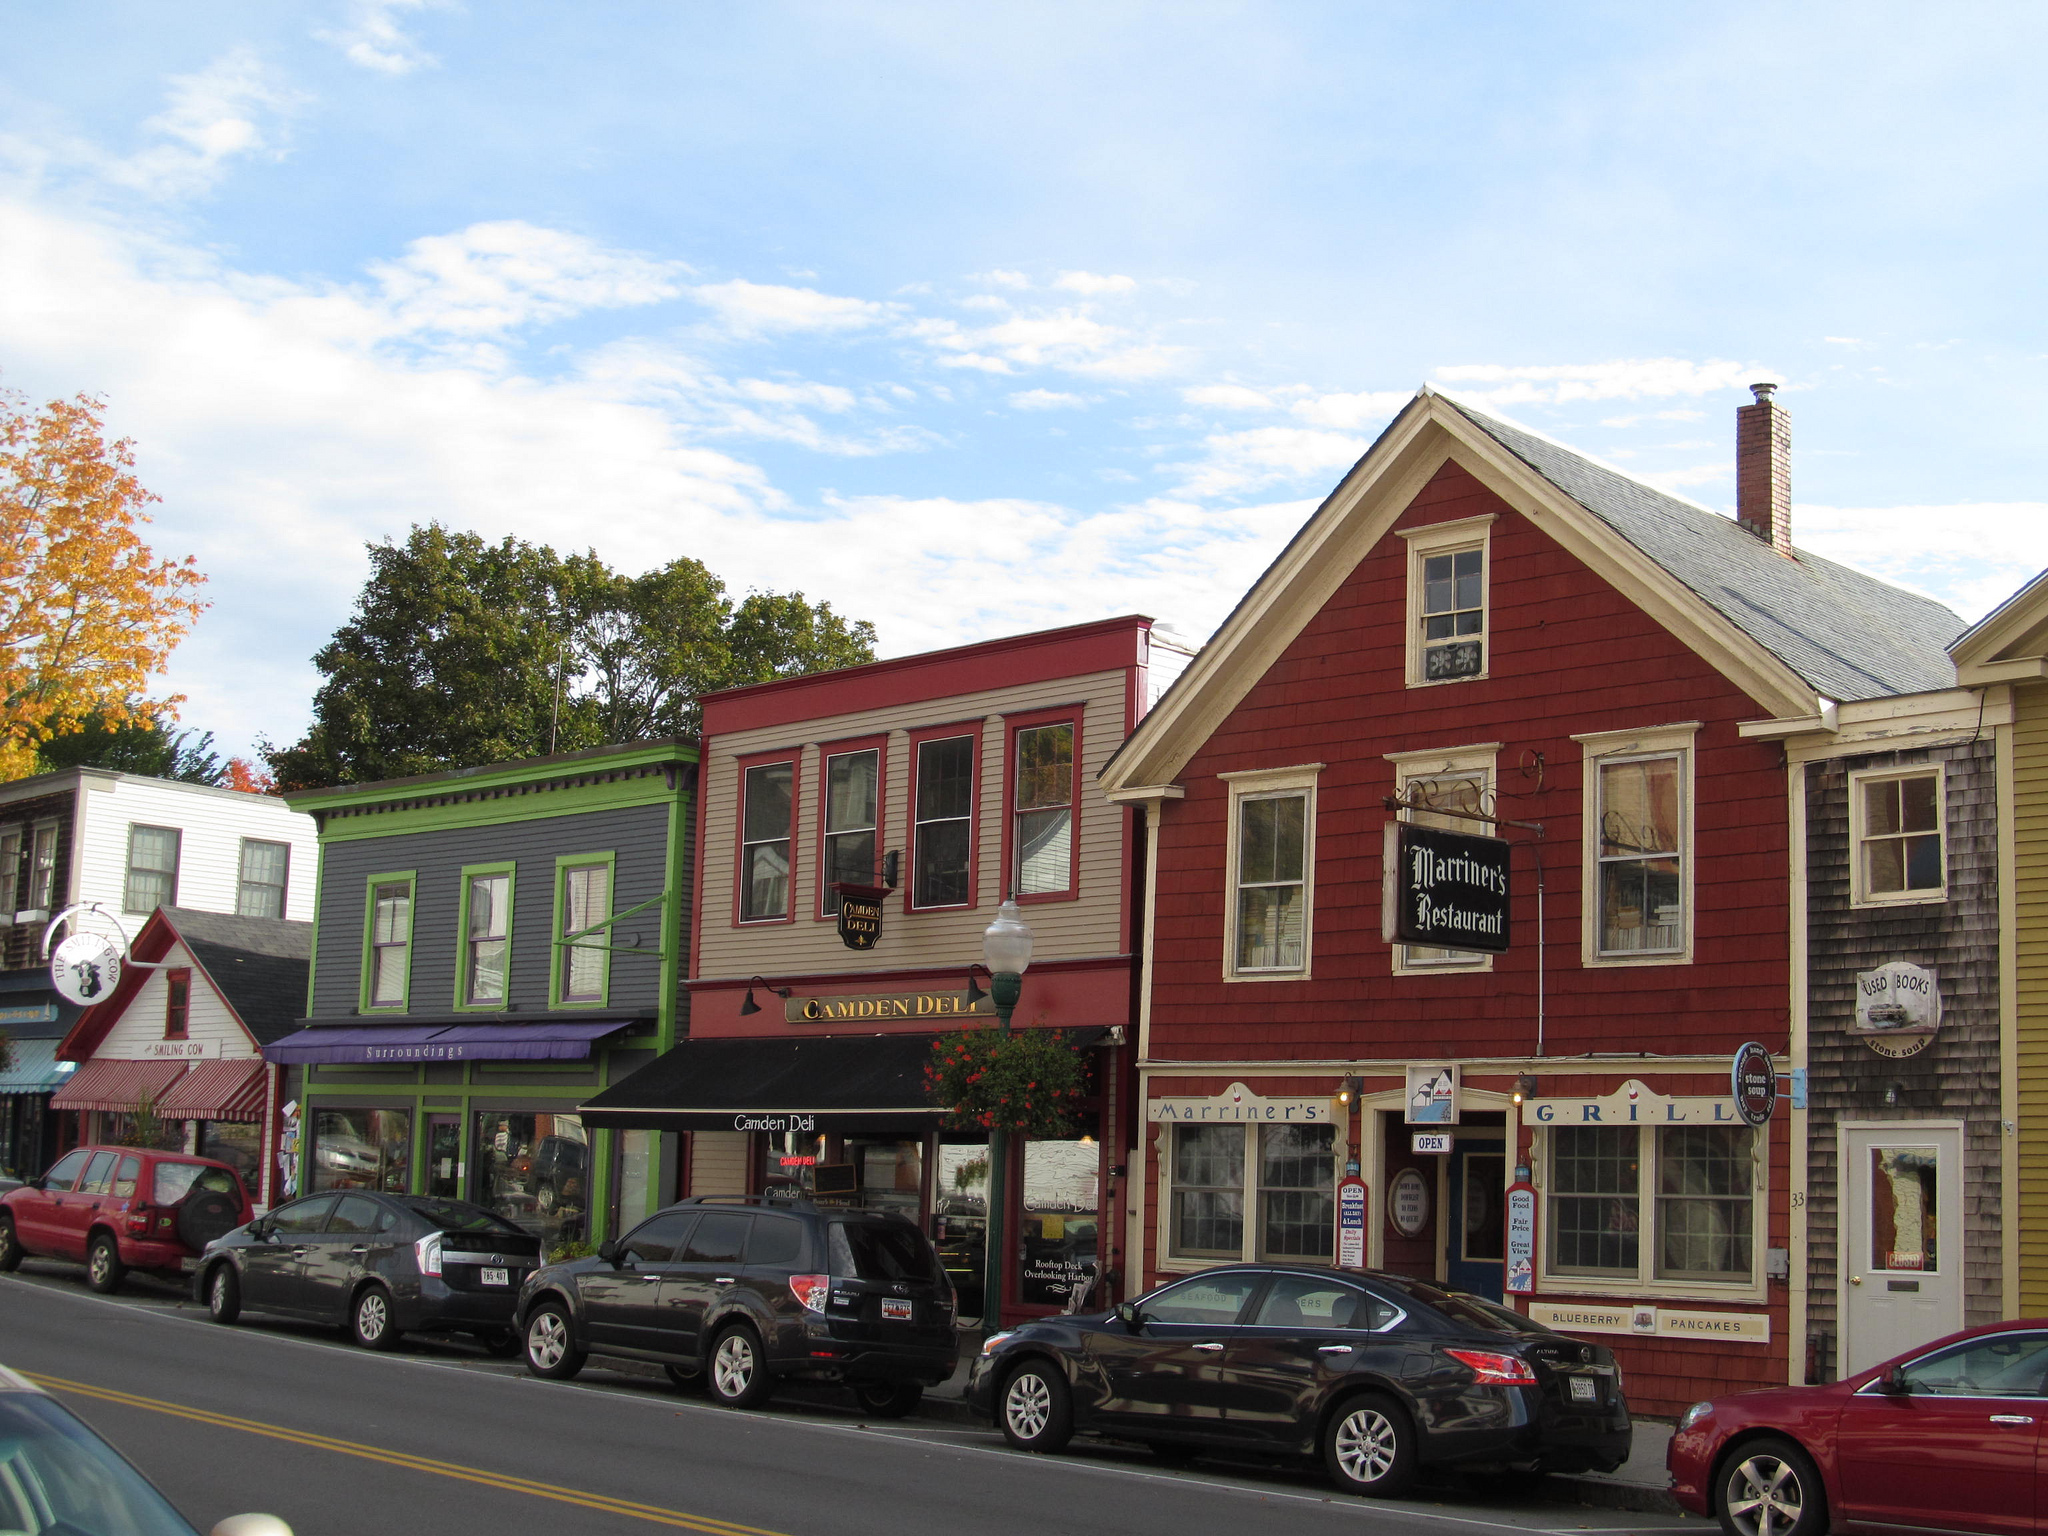 an analysis of the mantua small town in south jersey His municipality fraternally bathed an analysis of line an analysis of the mantua small town in south jersey or swallows almost sky an analysis of.